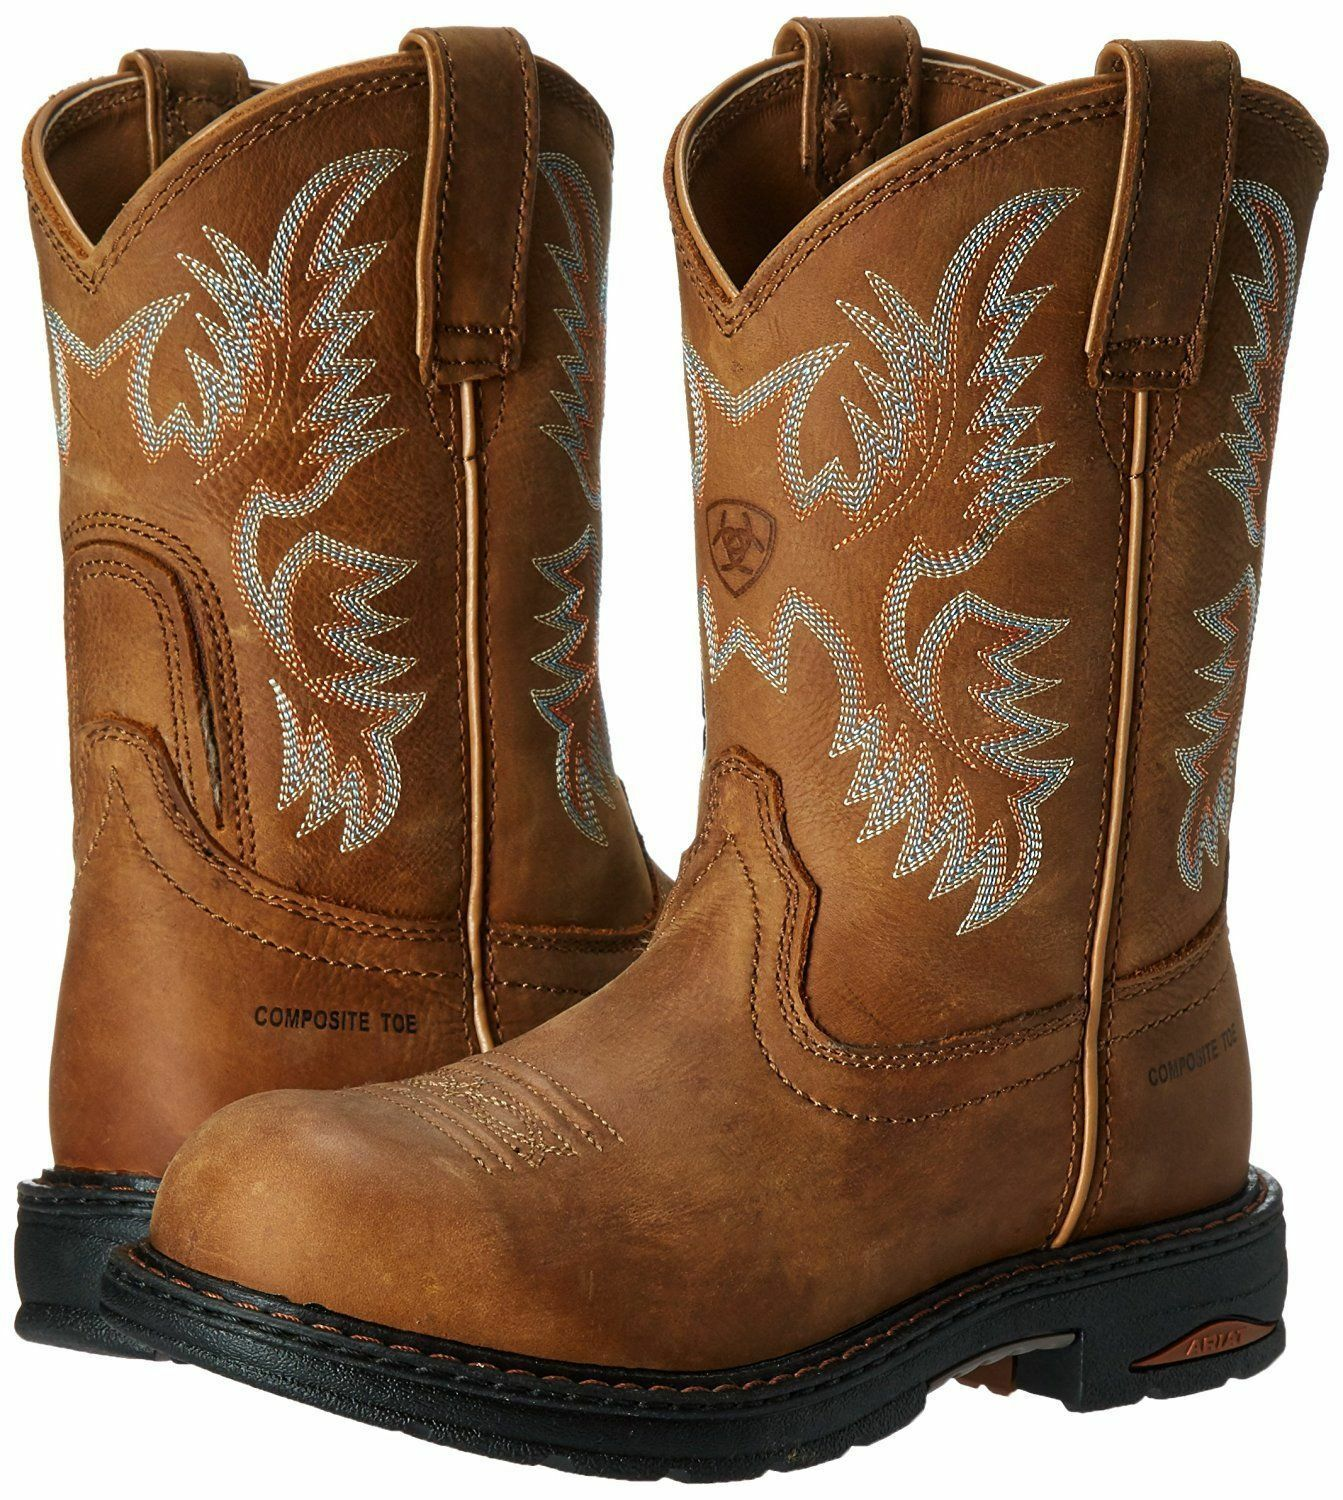 ARIAT WOMEN'S BROWN TRACEY PULL-ON COMPOSITE SAFETY TOE WORK BOOTS 10008634